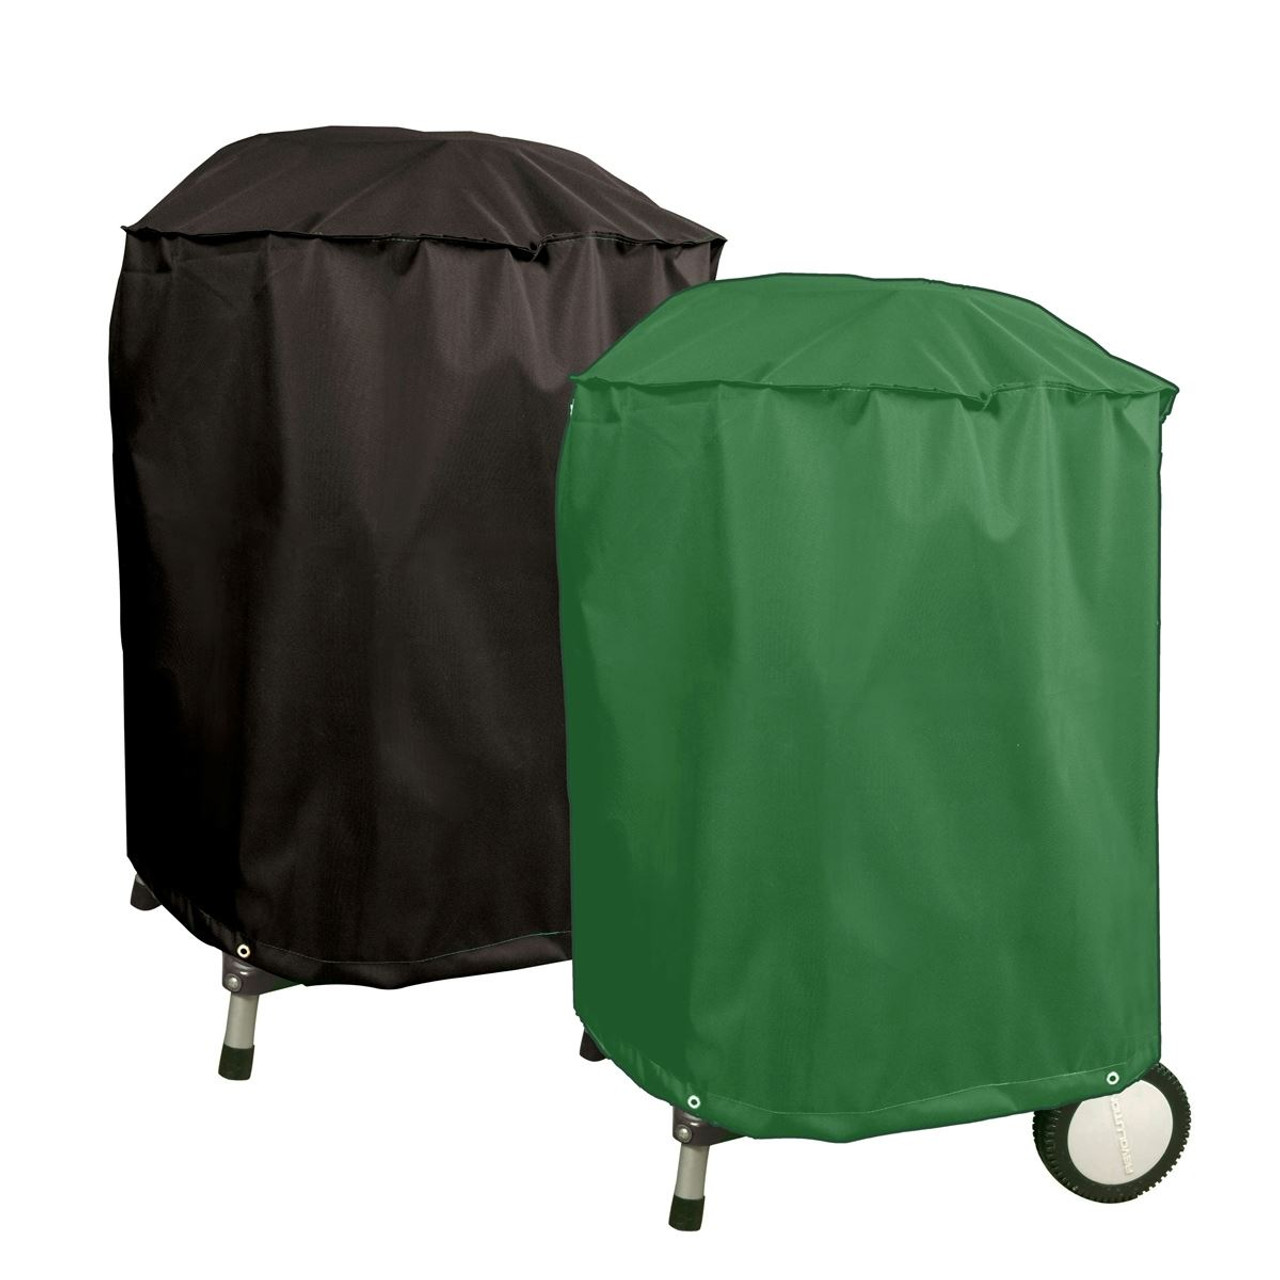 Bosmere Protector 2000 Barbecue Covers